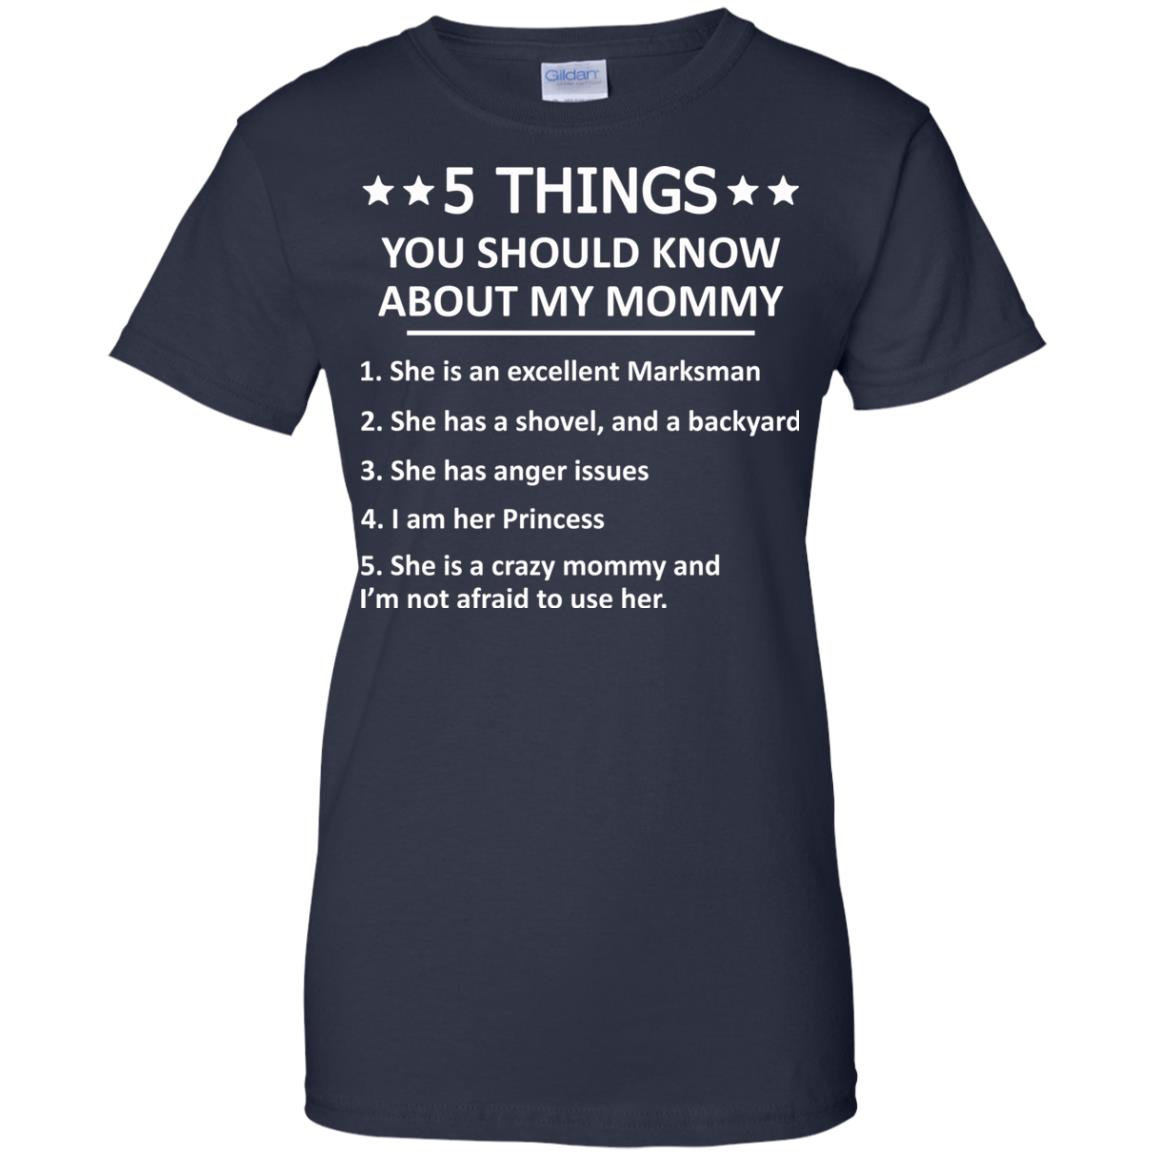 image 1317px 5 Things you should know about my mommy t shirt, hoodies, tank